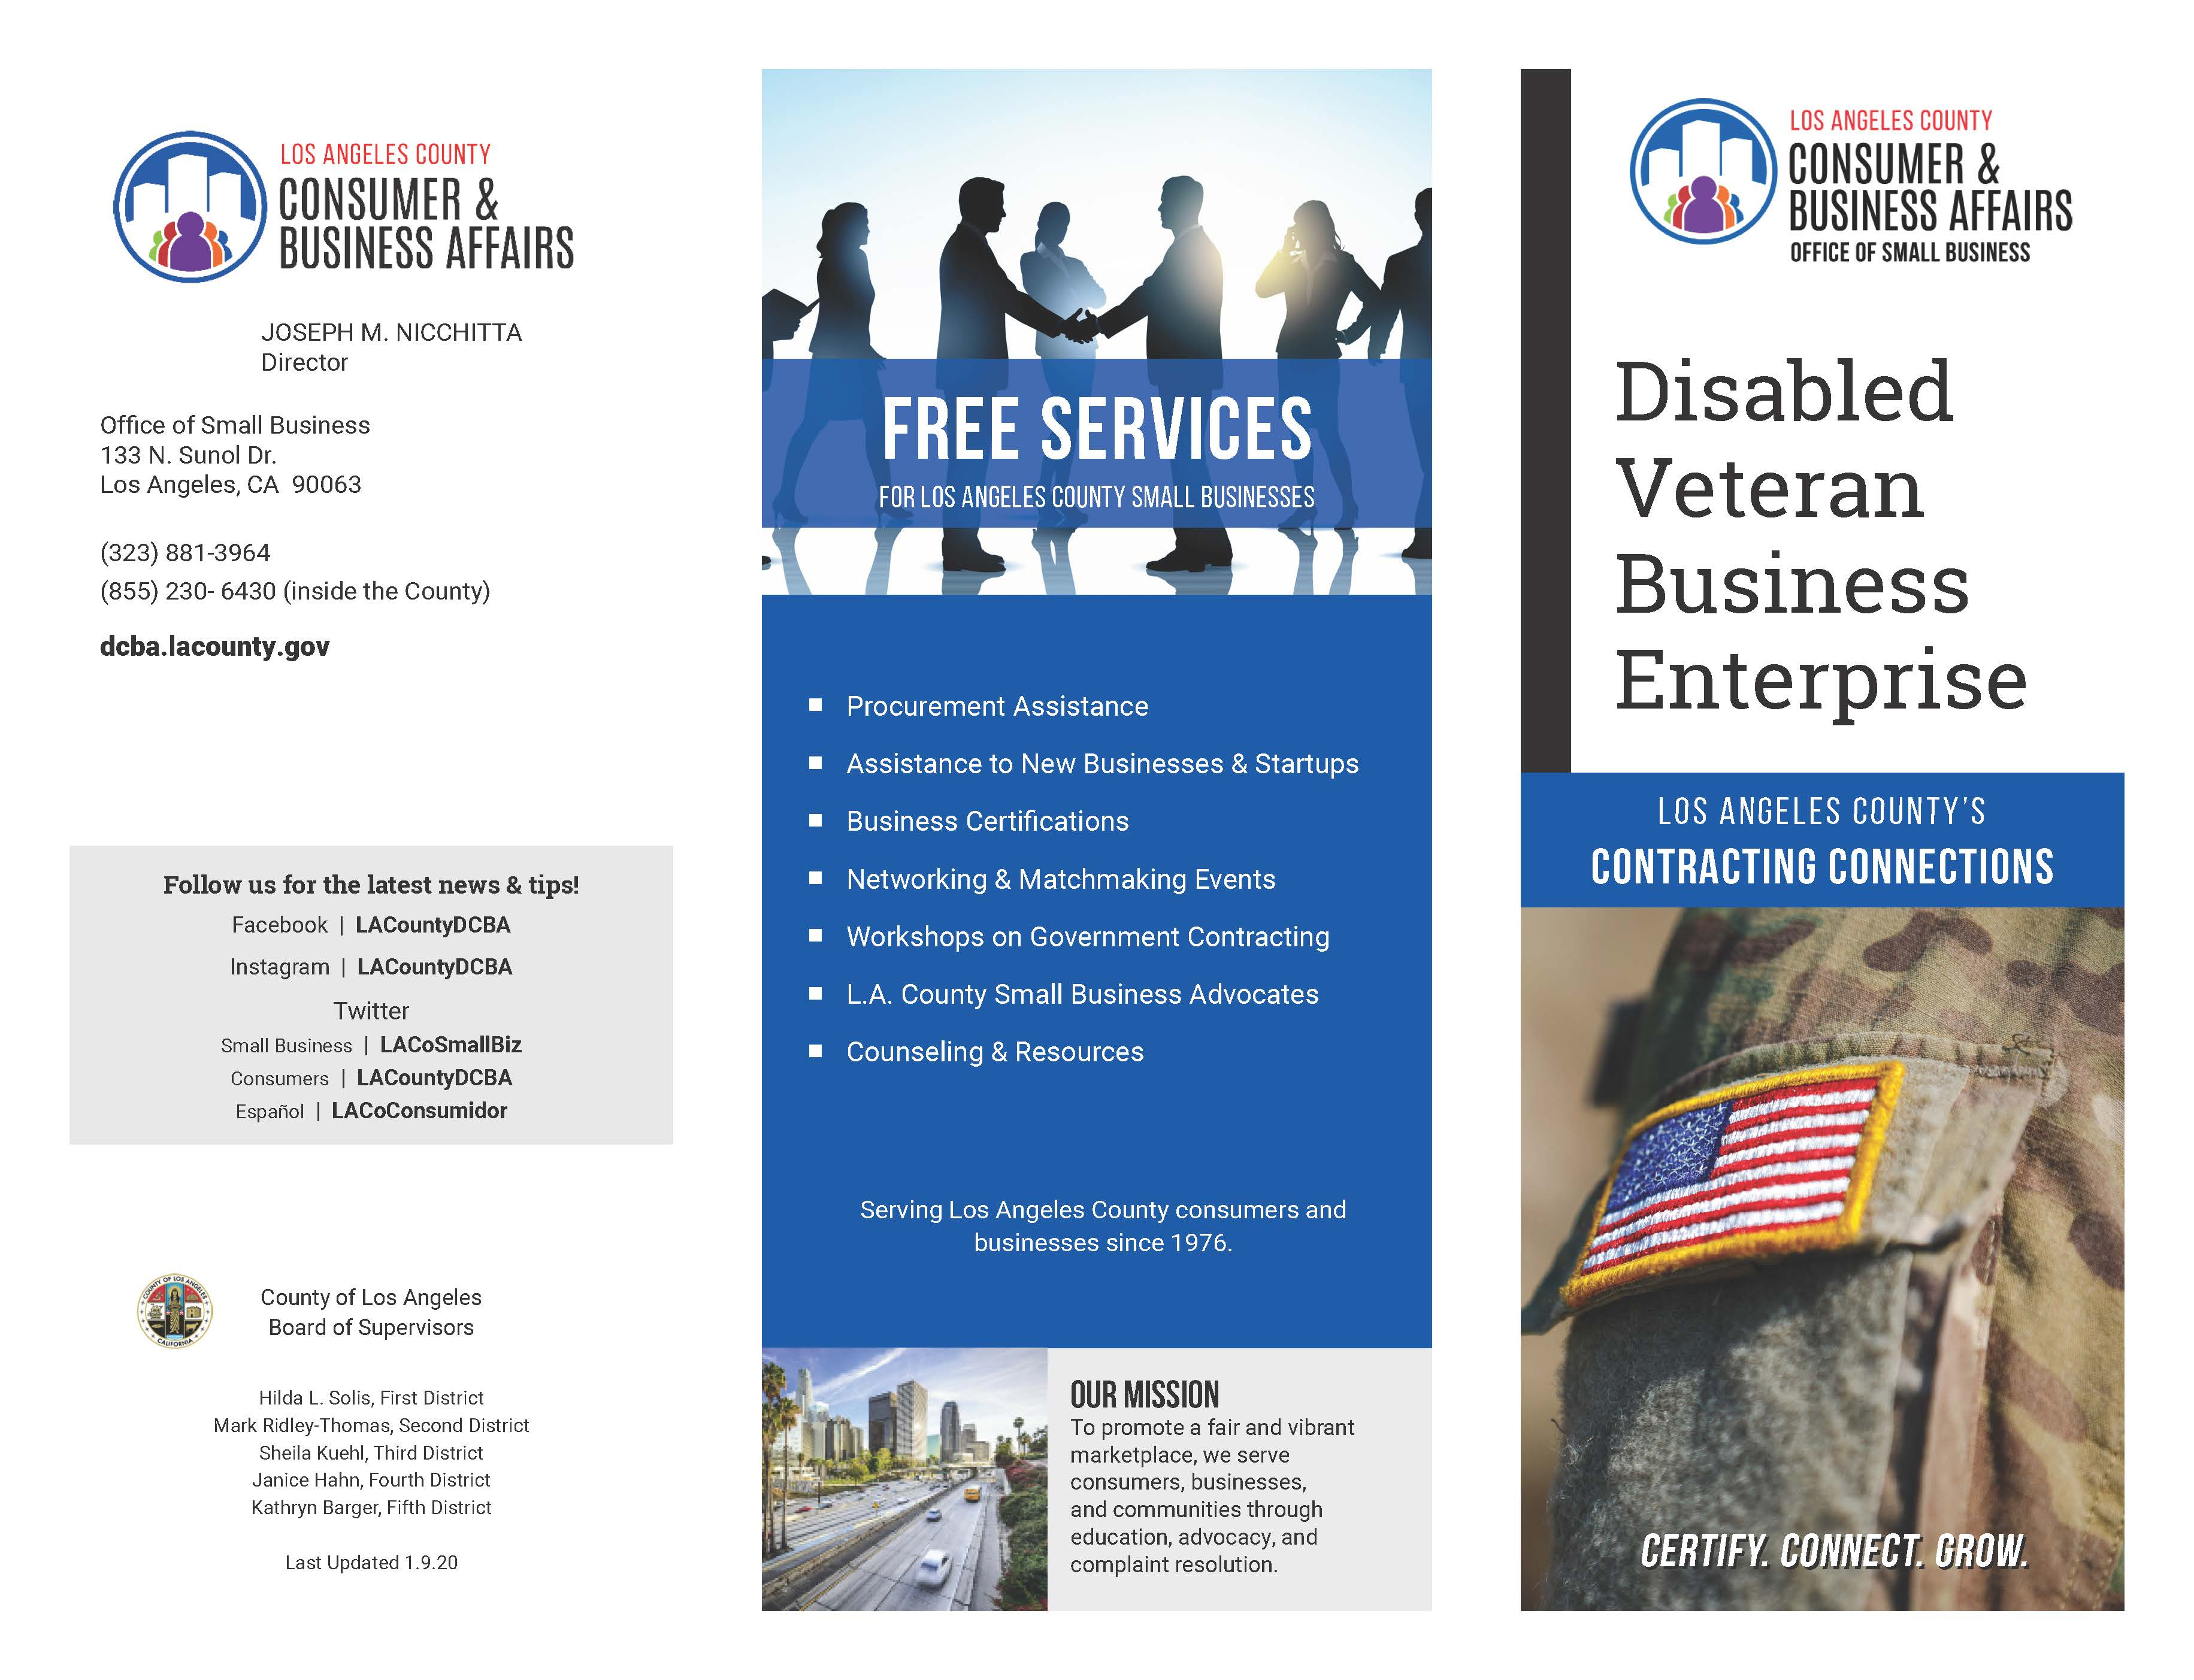 Disabled Veteran Enterprise